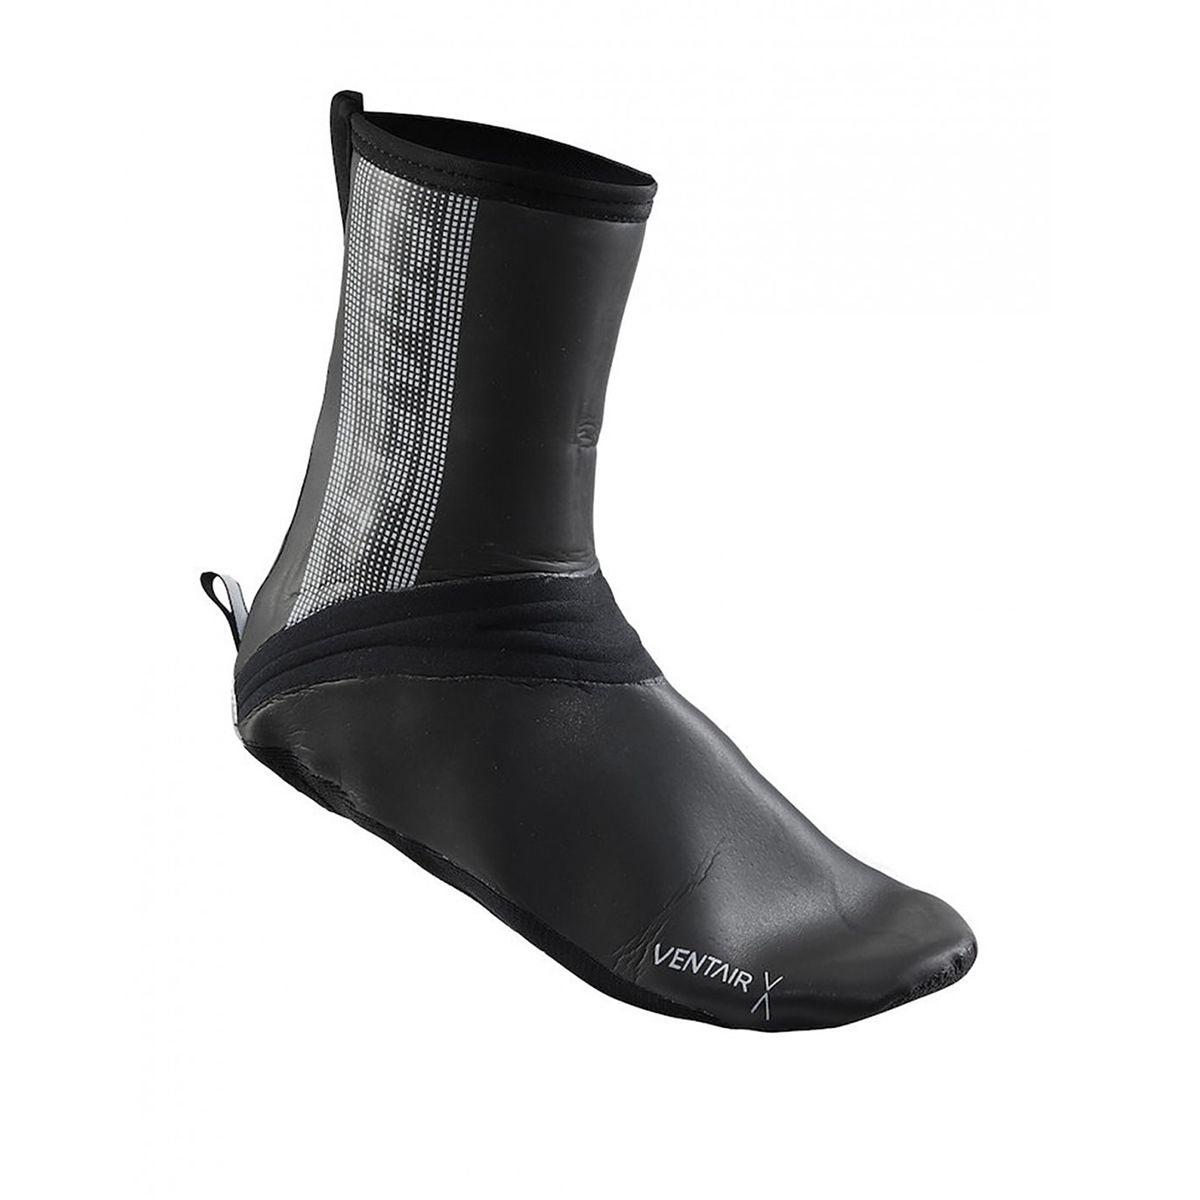 CRAFT SHIELD BOOTIE overshoes | shoecovers_clothes